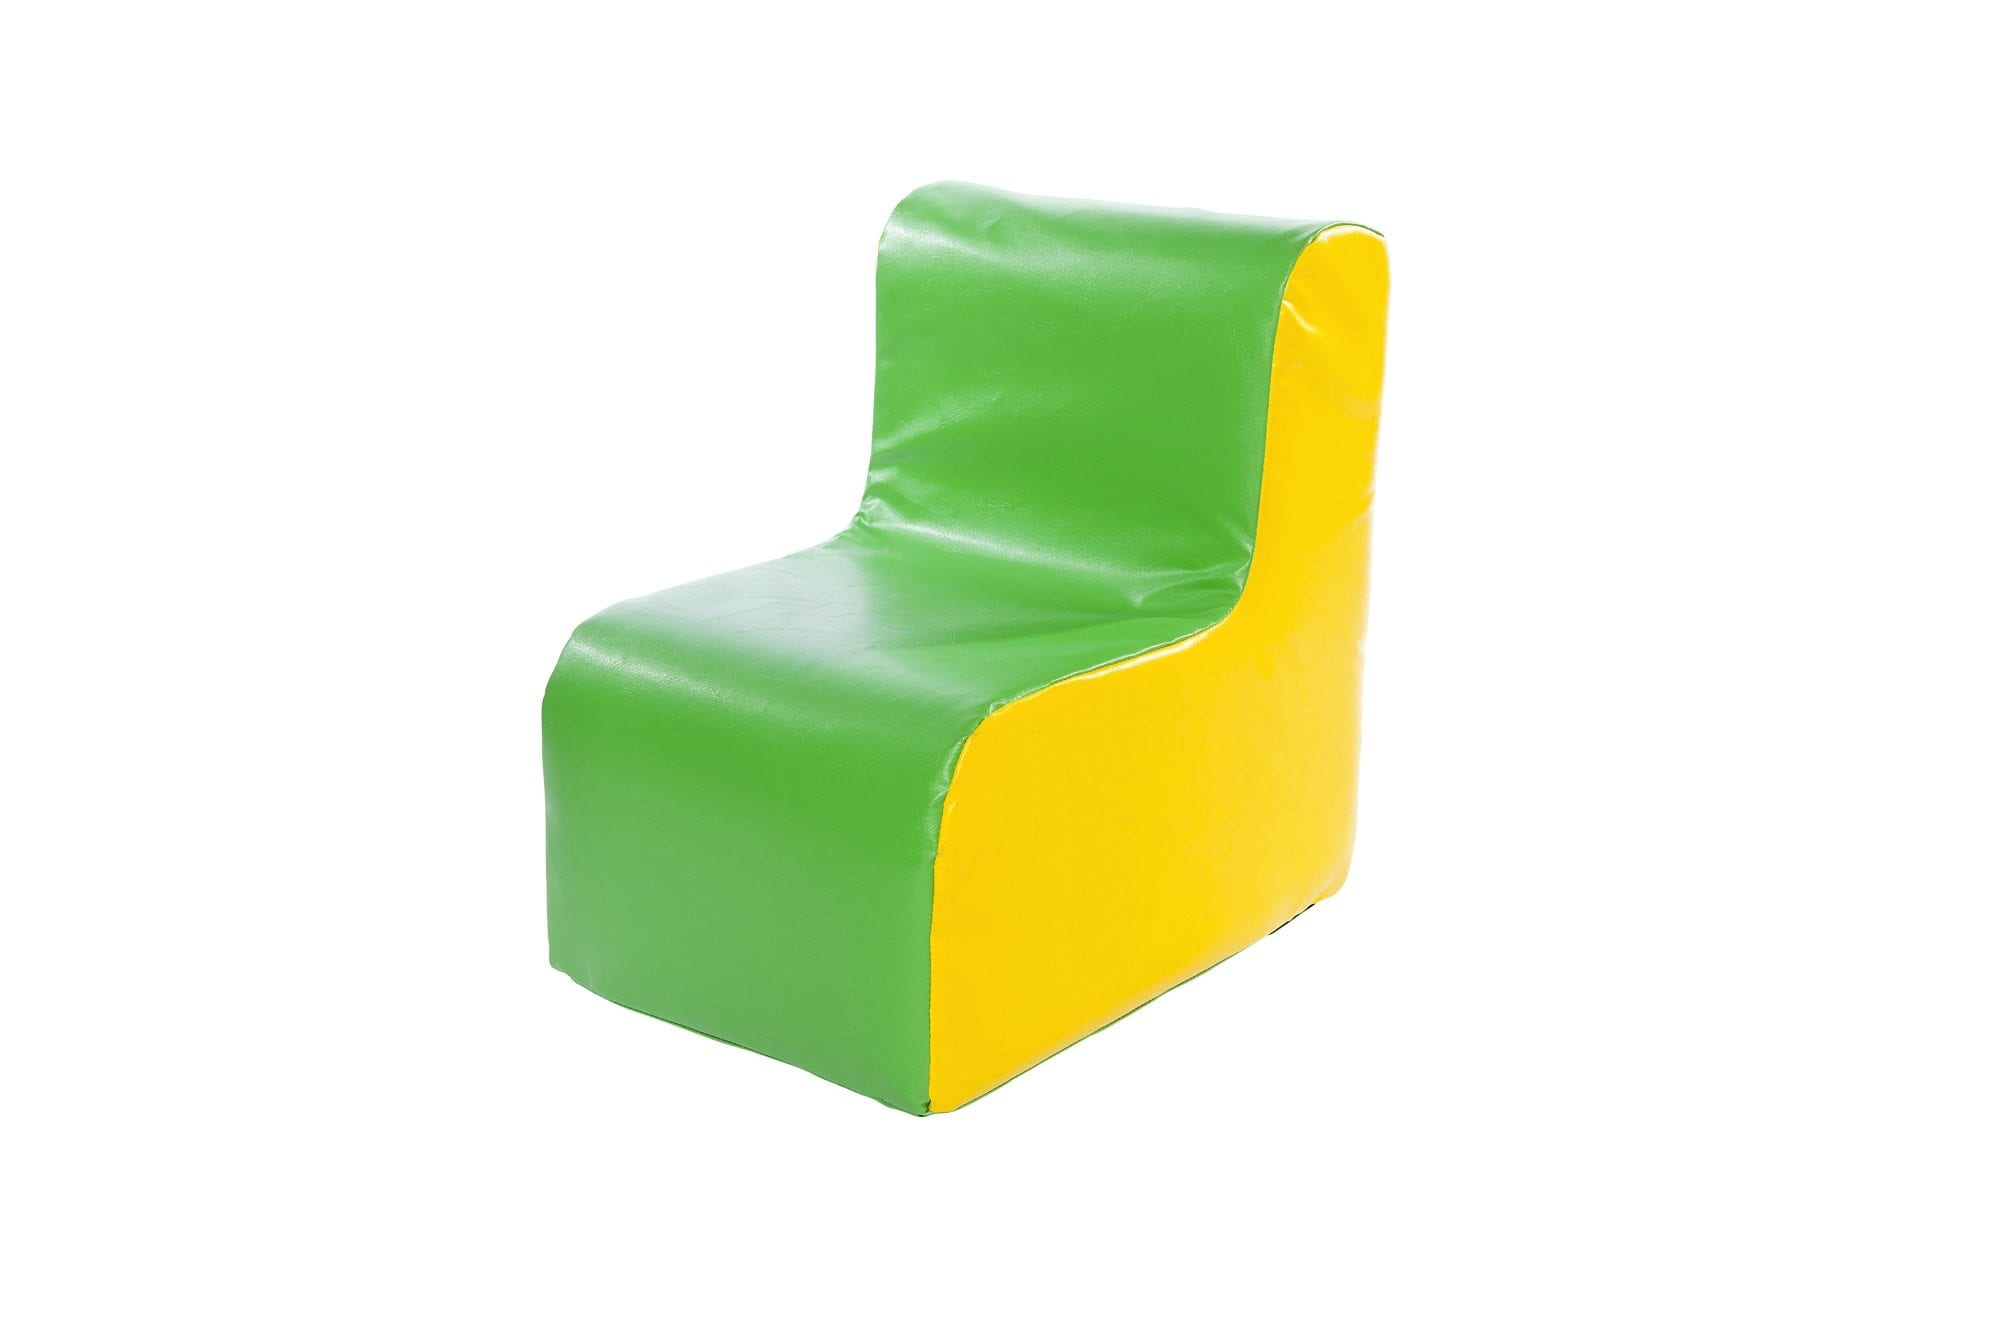 childrens chairs soft amazon lounge chair play furniture buy